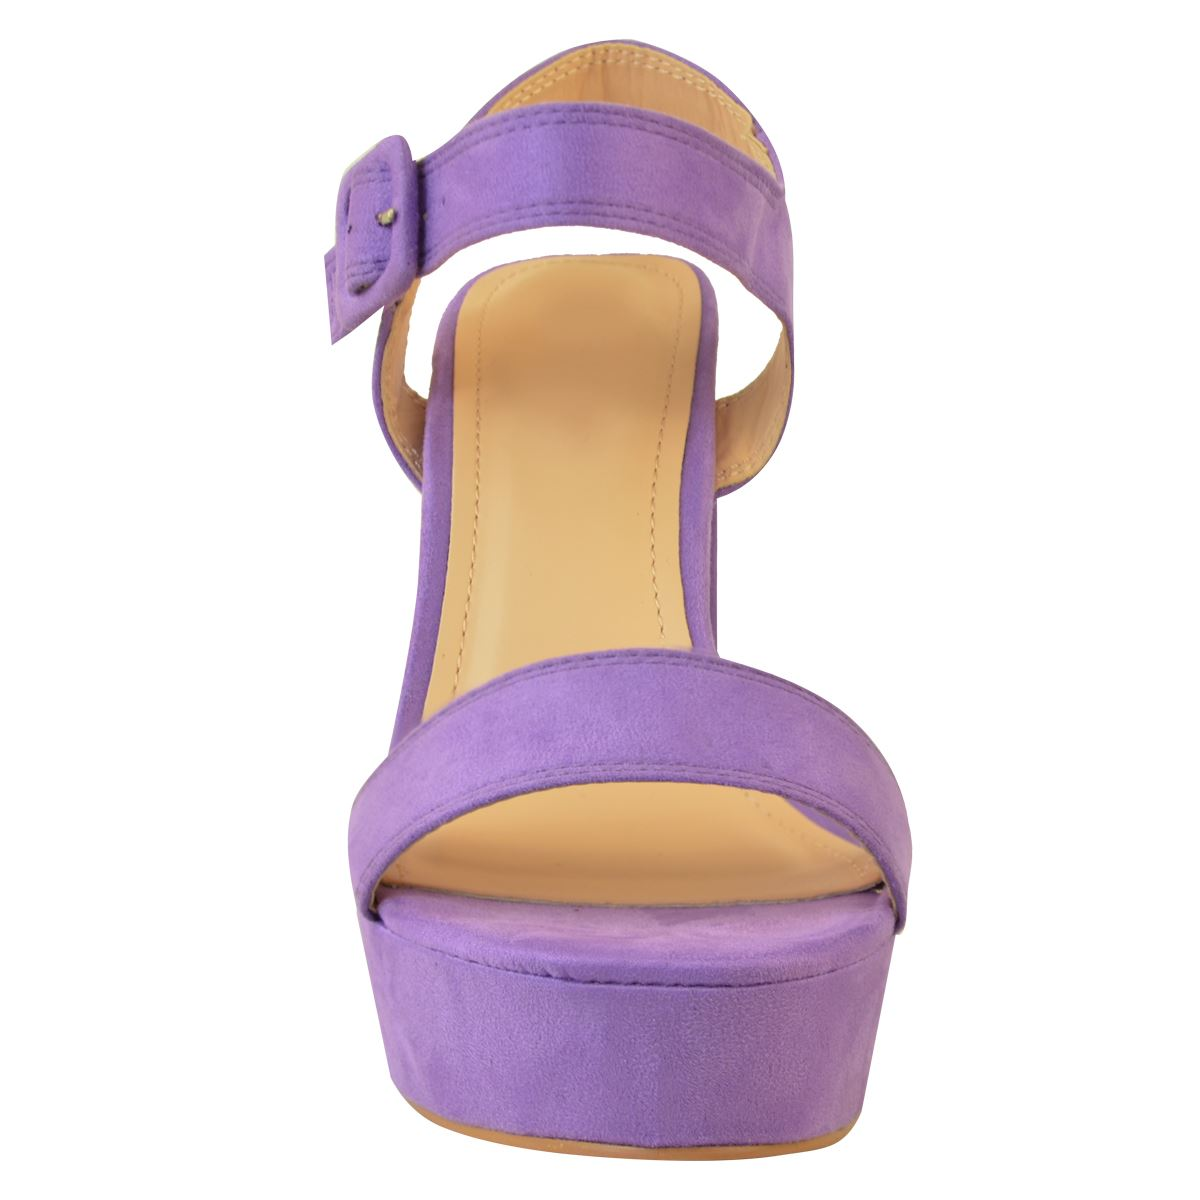 New-Womens-Summer-Platform-High-Heel-Sandals-Ladies-Open-Toe-Strappy-Party-Shoes thumbnail 31